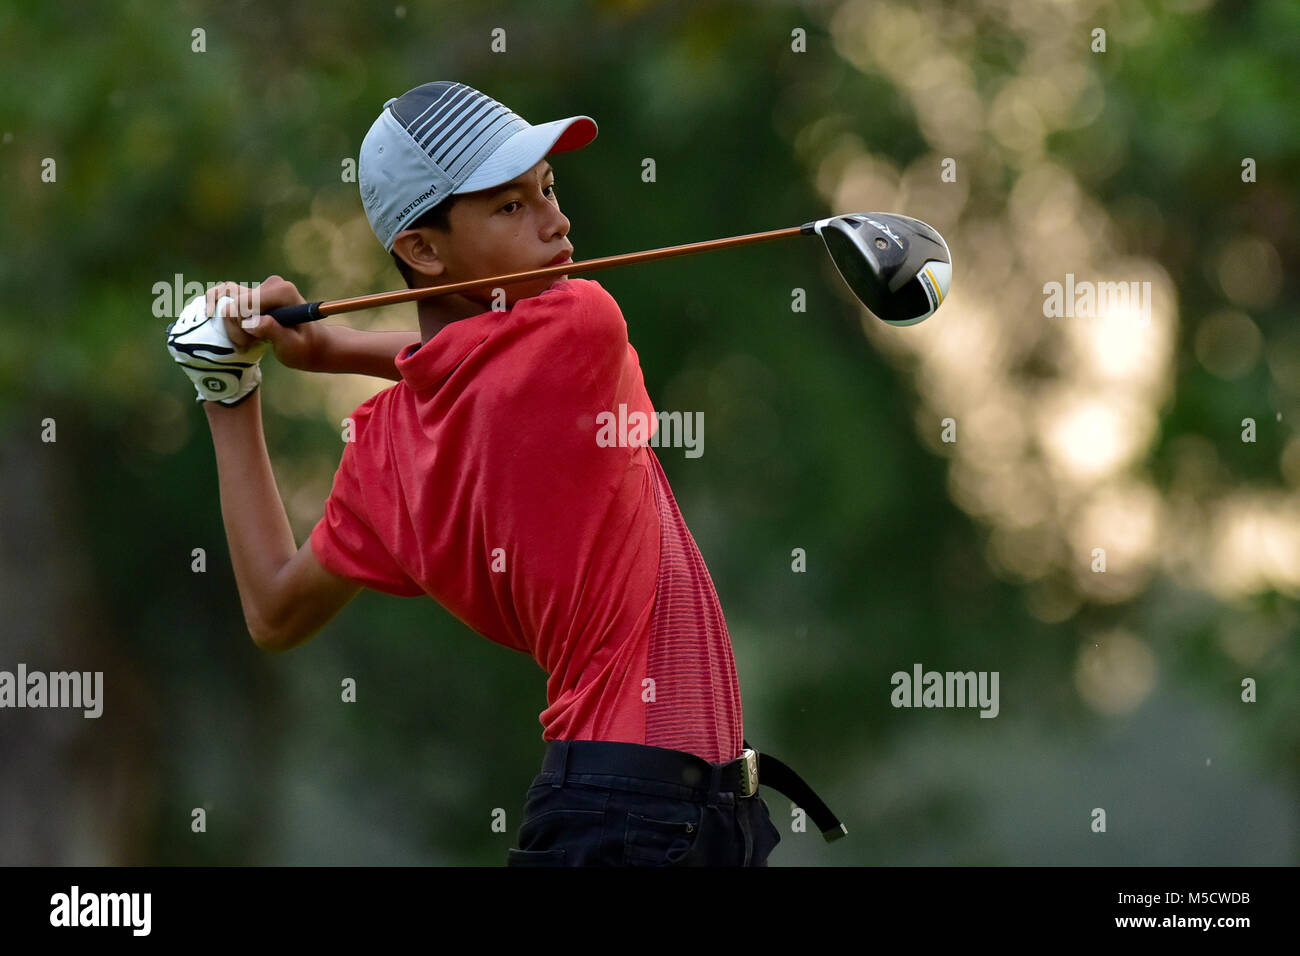 Danau, UKM Bangi - FEBRUARY 10: Muhd Afnan Hanif watches his tee shot on the 15th hole during Round One of the Danau - Stock Image